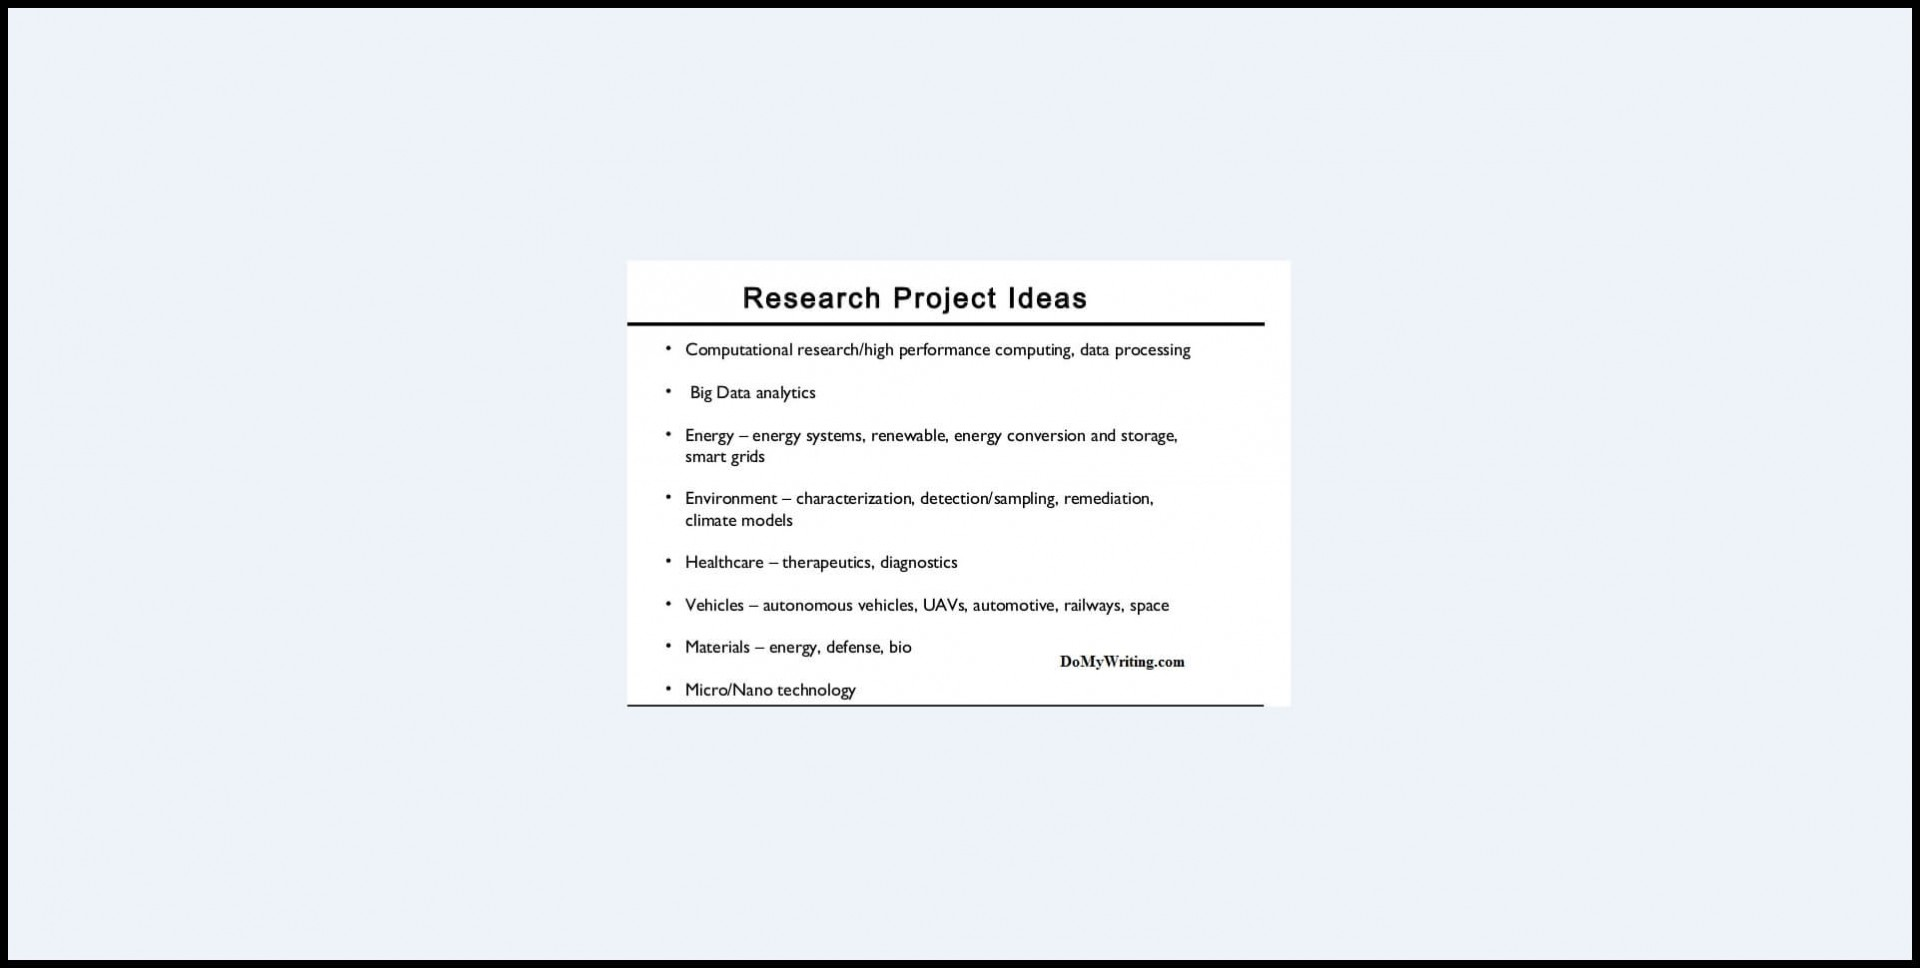 004 Research Project Ideas Paper Cool Topics To Do Wonderful A On For Projects Interesting 1920